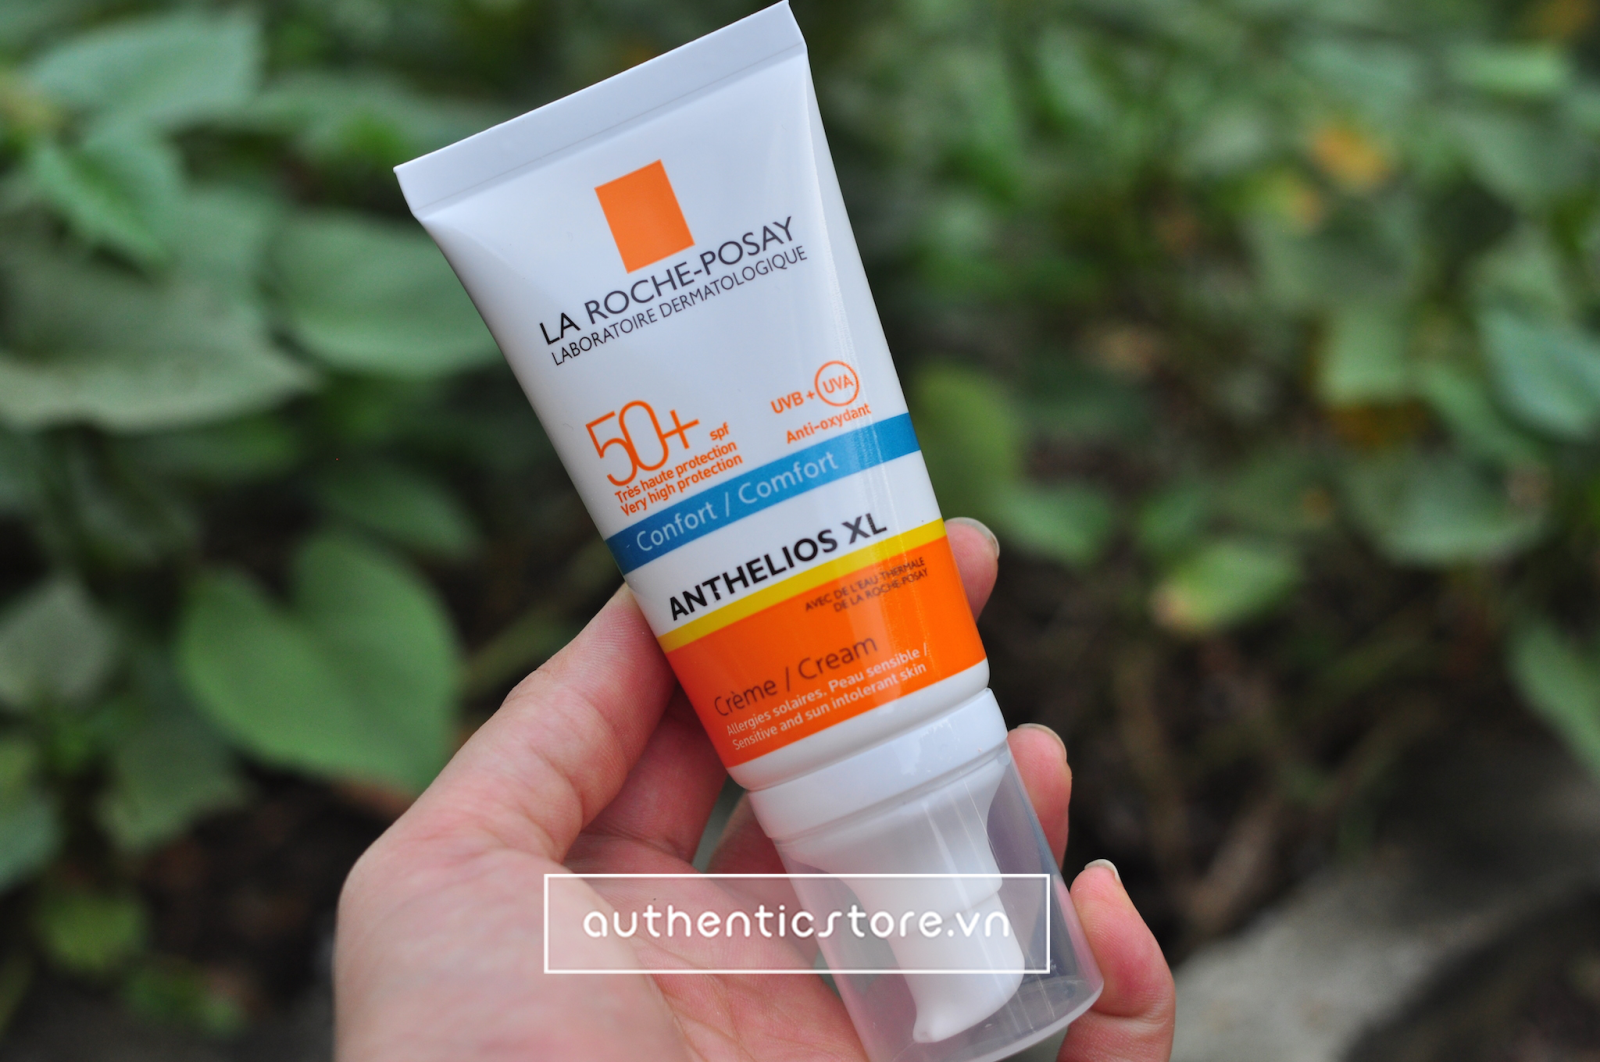 La Roche Posay Anthelios XL Comfort bb cream .jpg